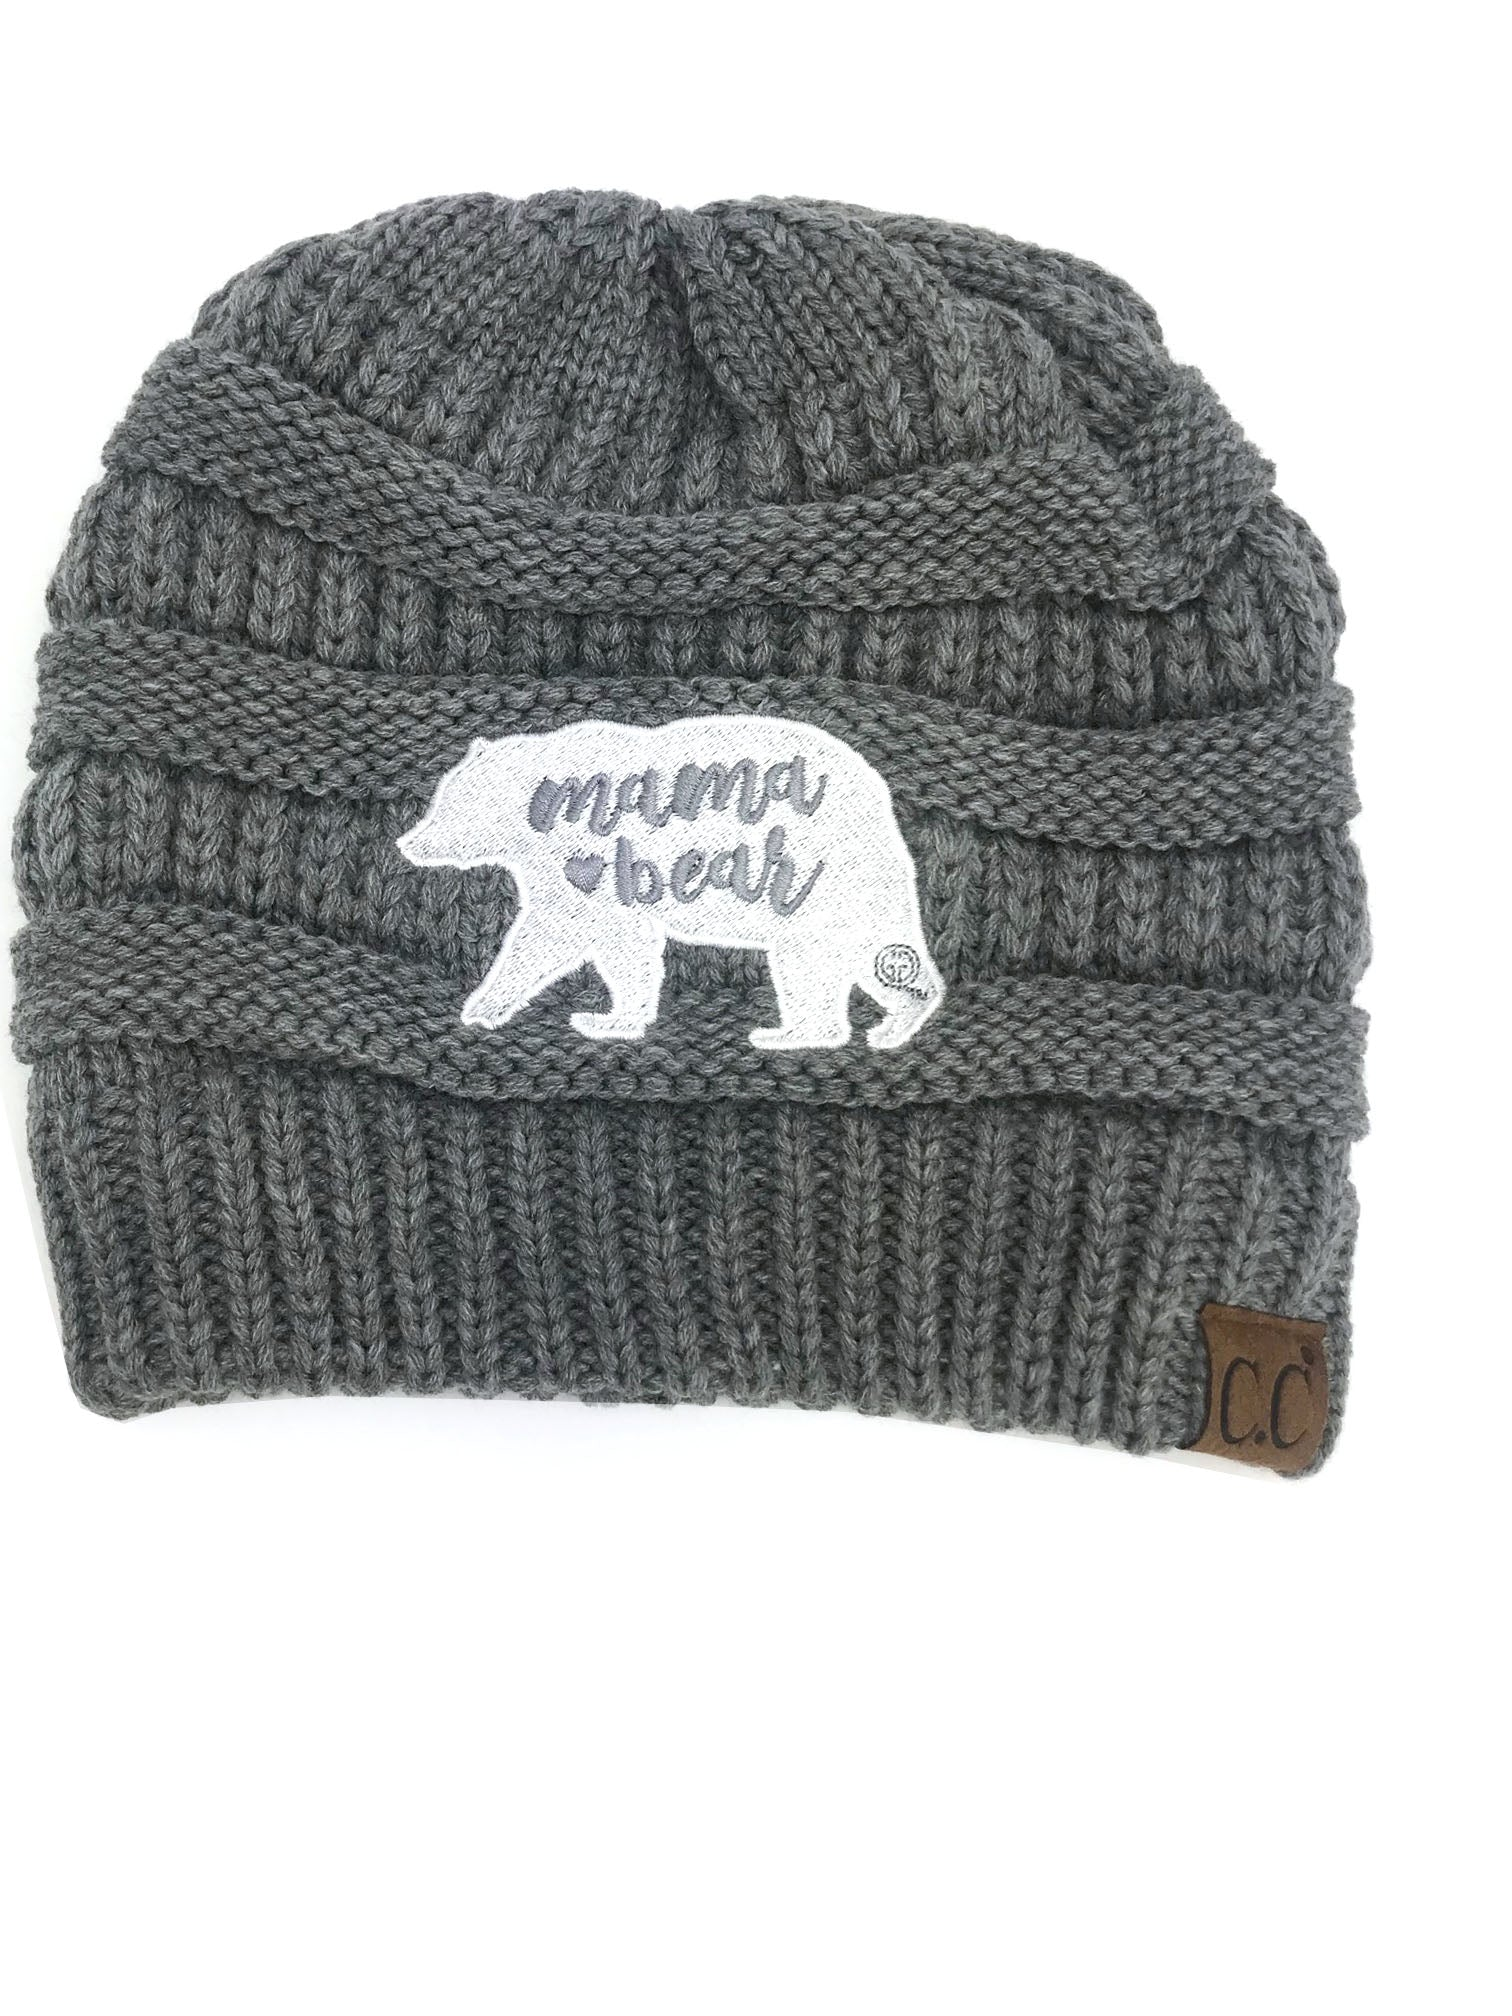 BEAR-20 LIGHT MELANGE GREY